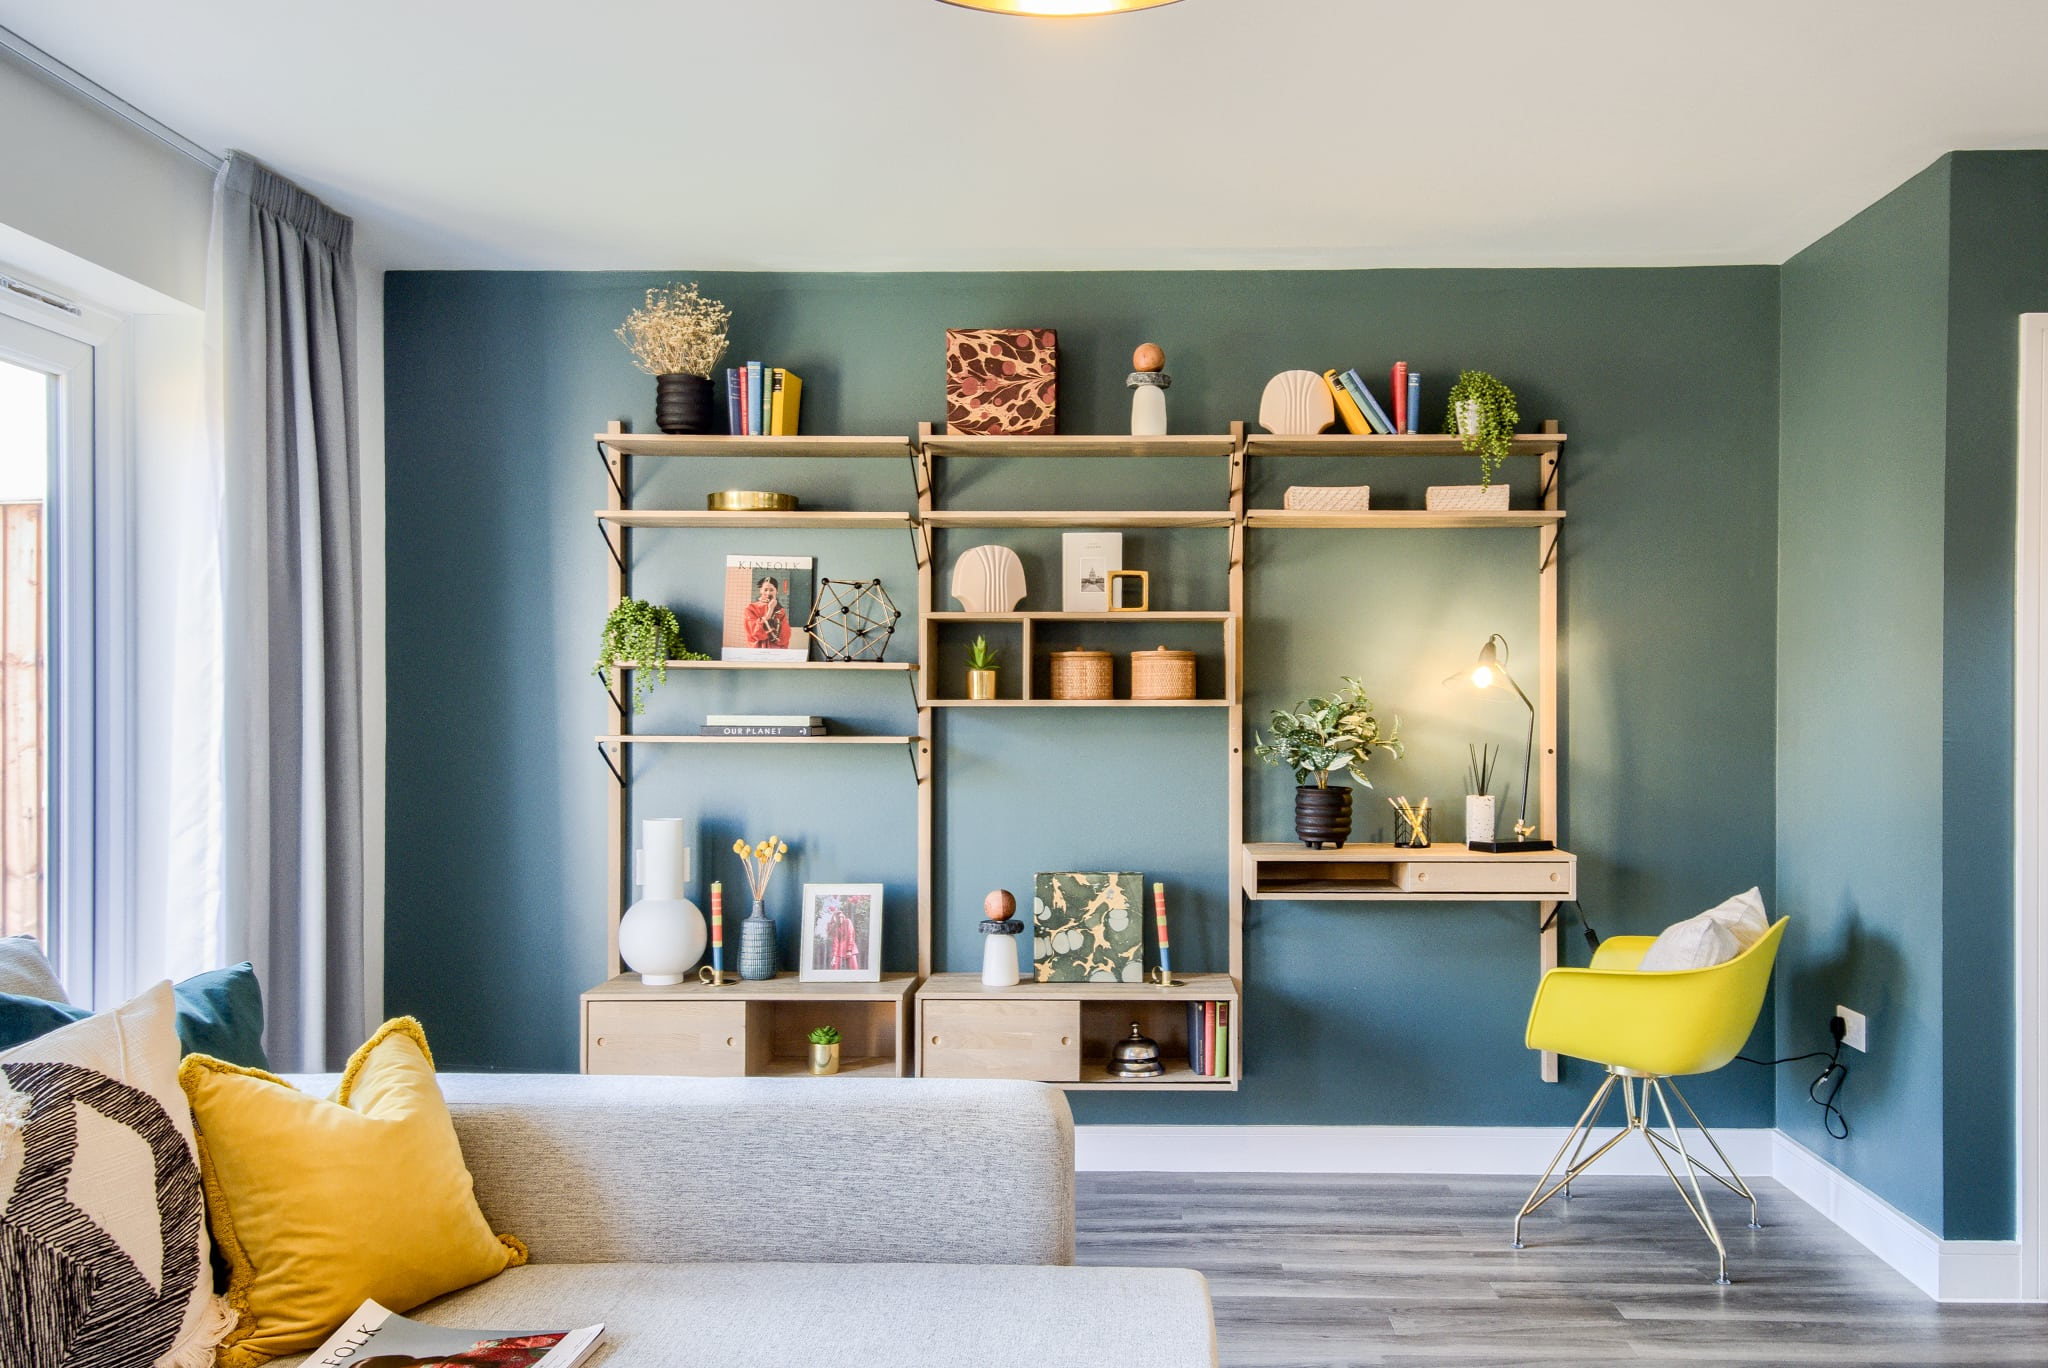 Show home photography of a living room at L&Q's Consilio - Shared Ownership homes available on Share to Buy